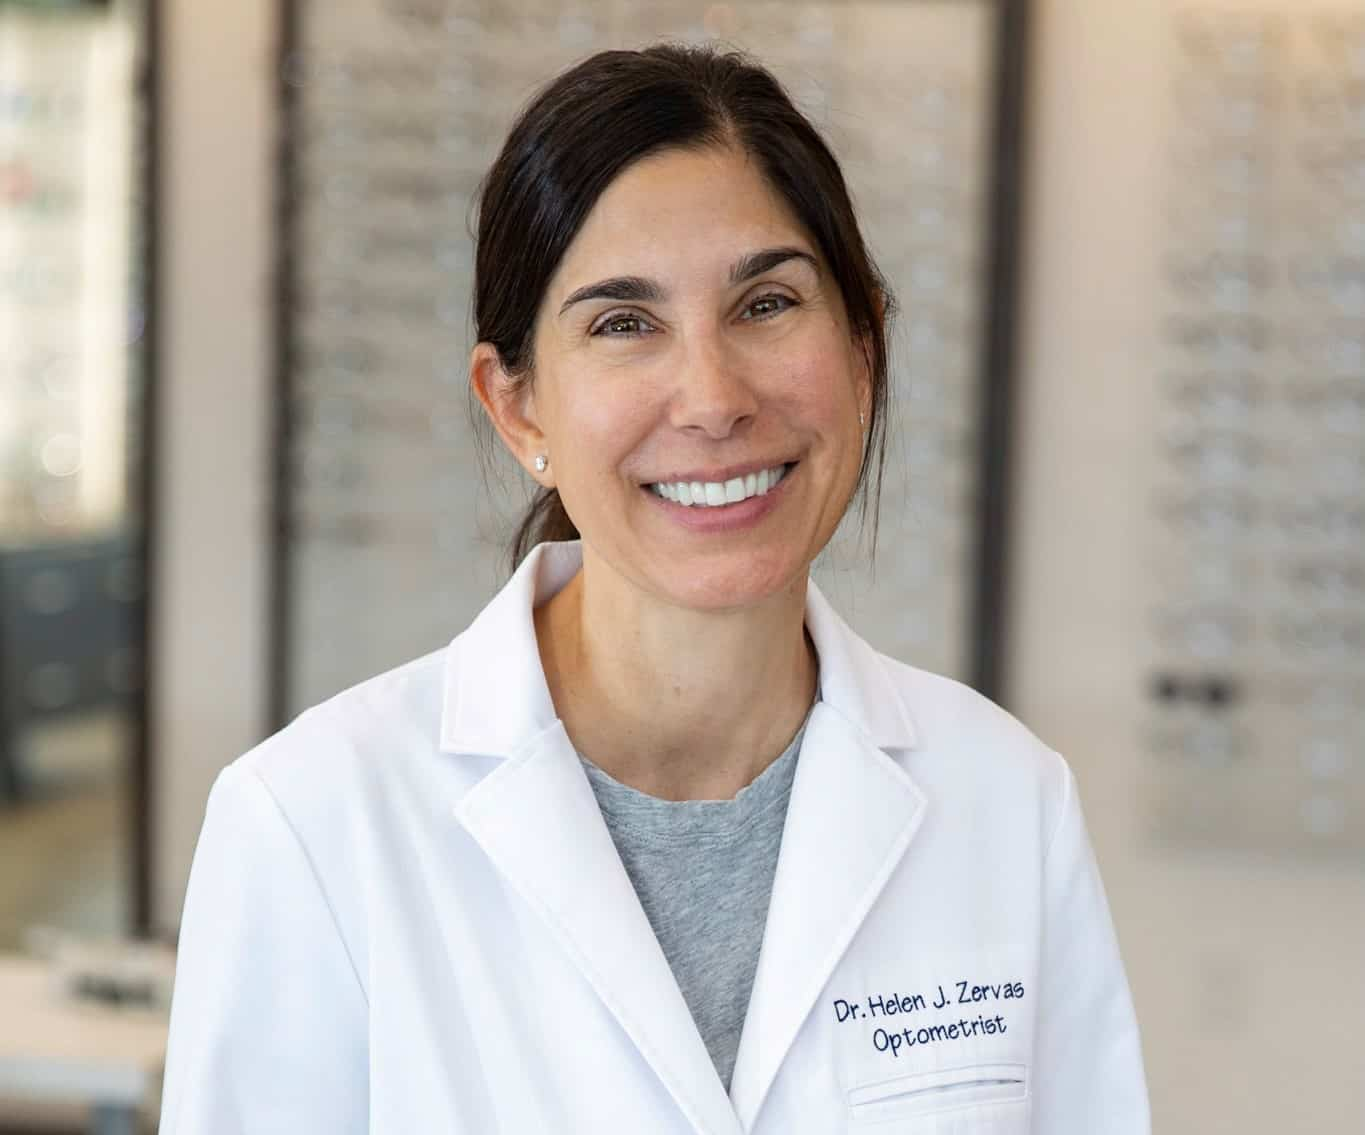 Dr. Helen J. Zervas of Family Eye Care standing smiling for the camera in their Bristol Optometry office.